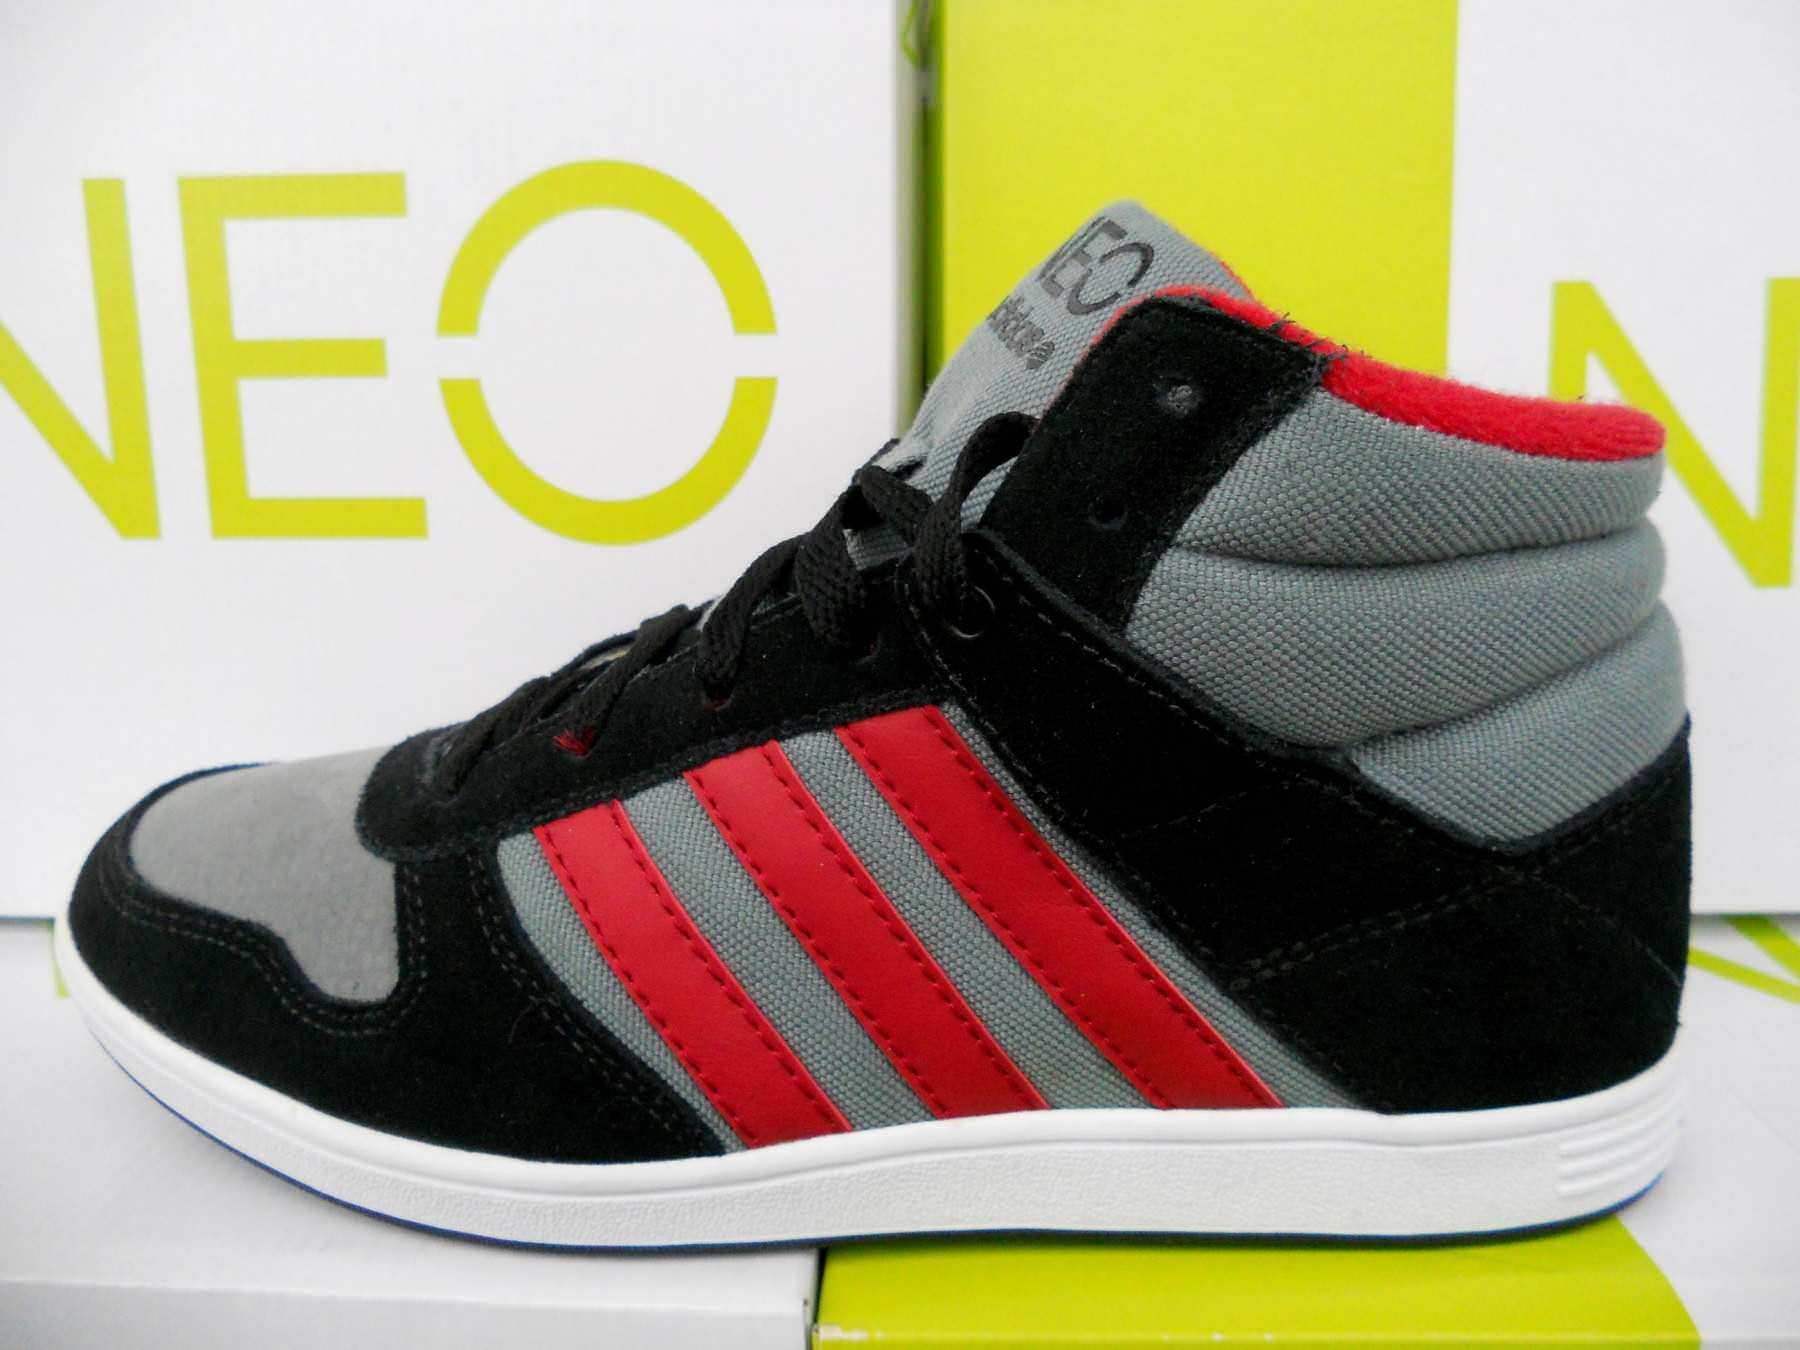 specprice stprice relogio adidas aliexpress hair item. Title ice item.  Discount off ock left ld Orders Get upon coupon Shop Now Loading.